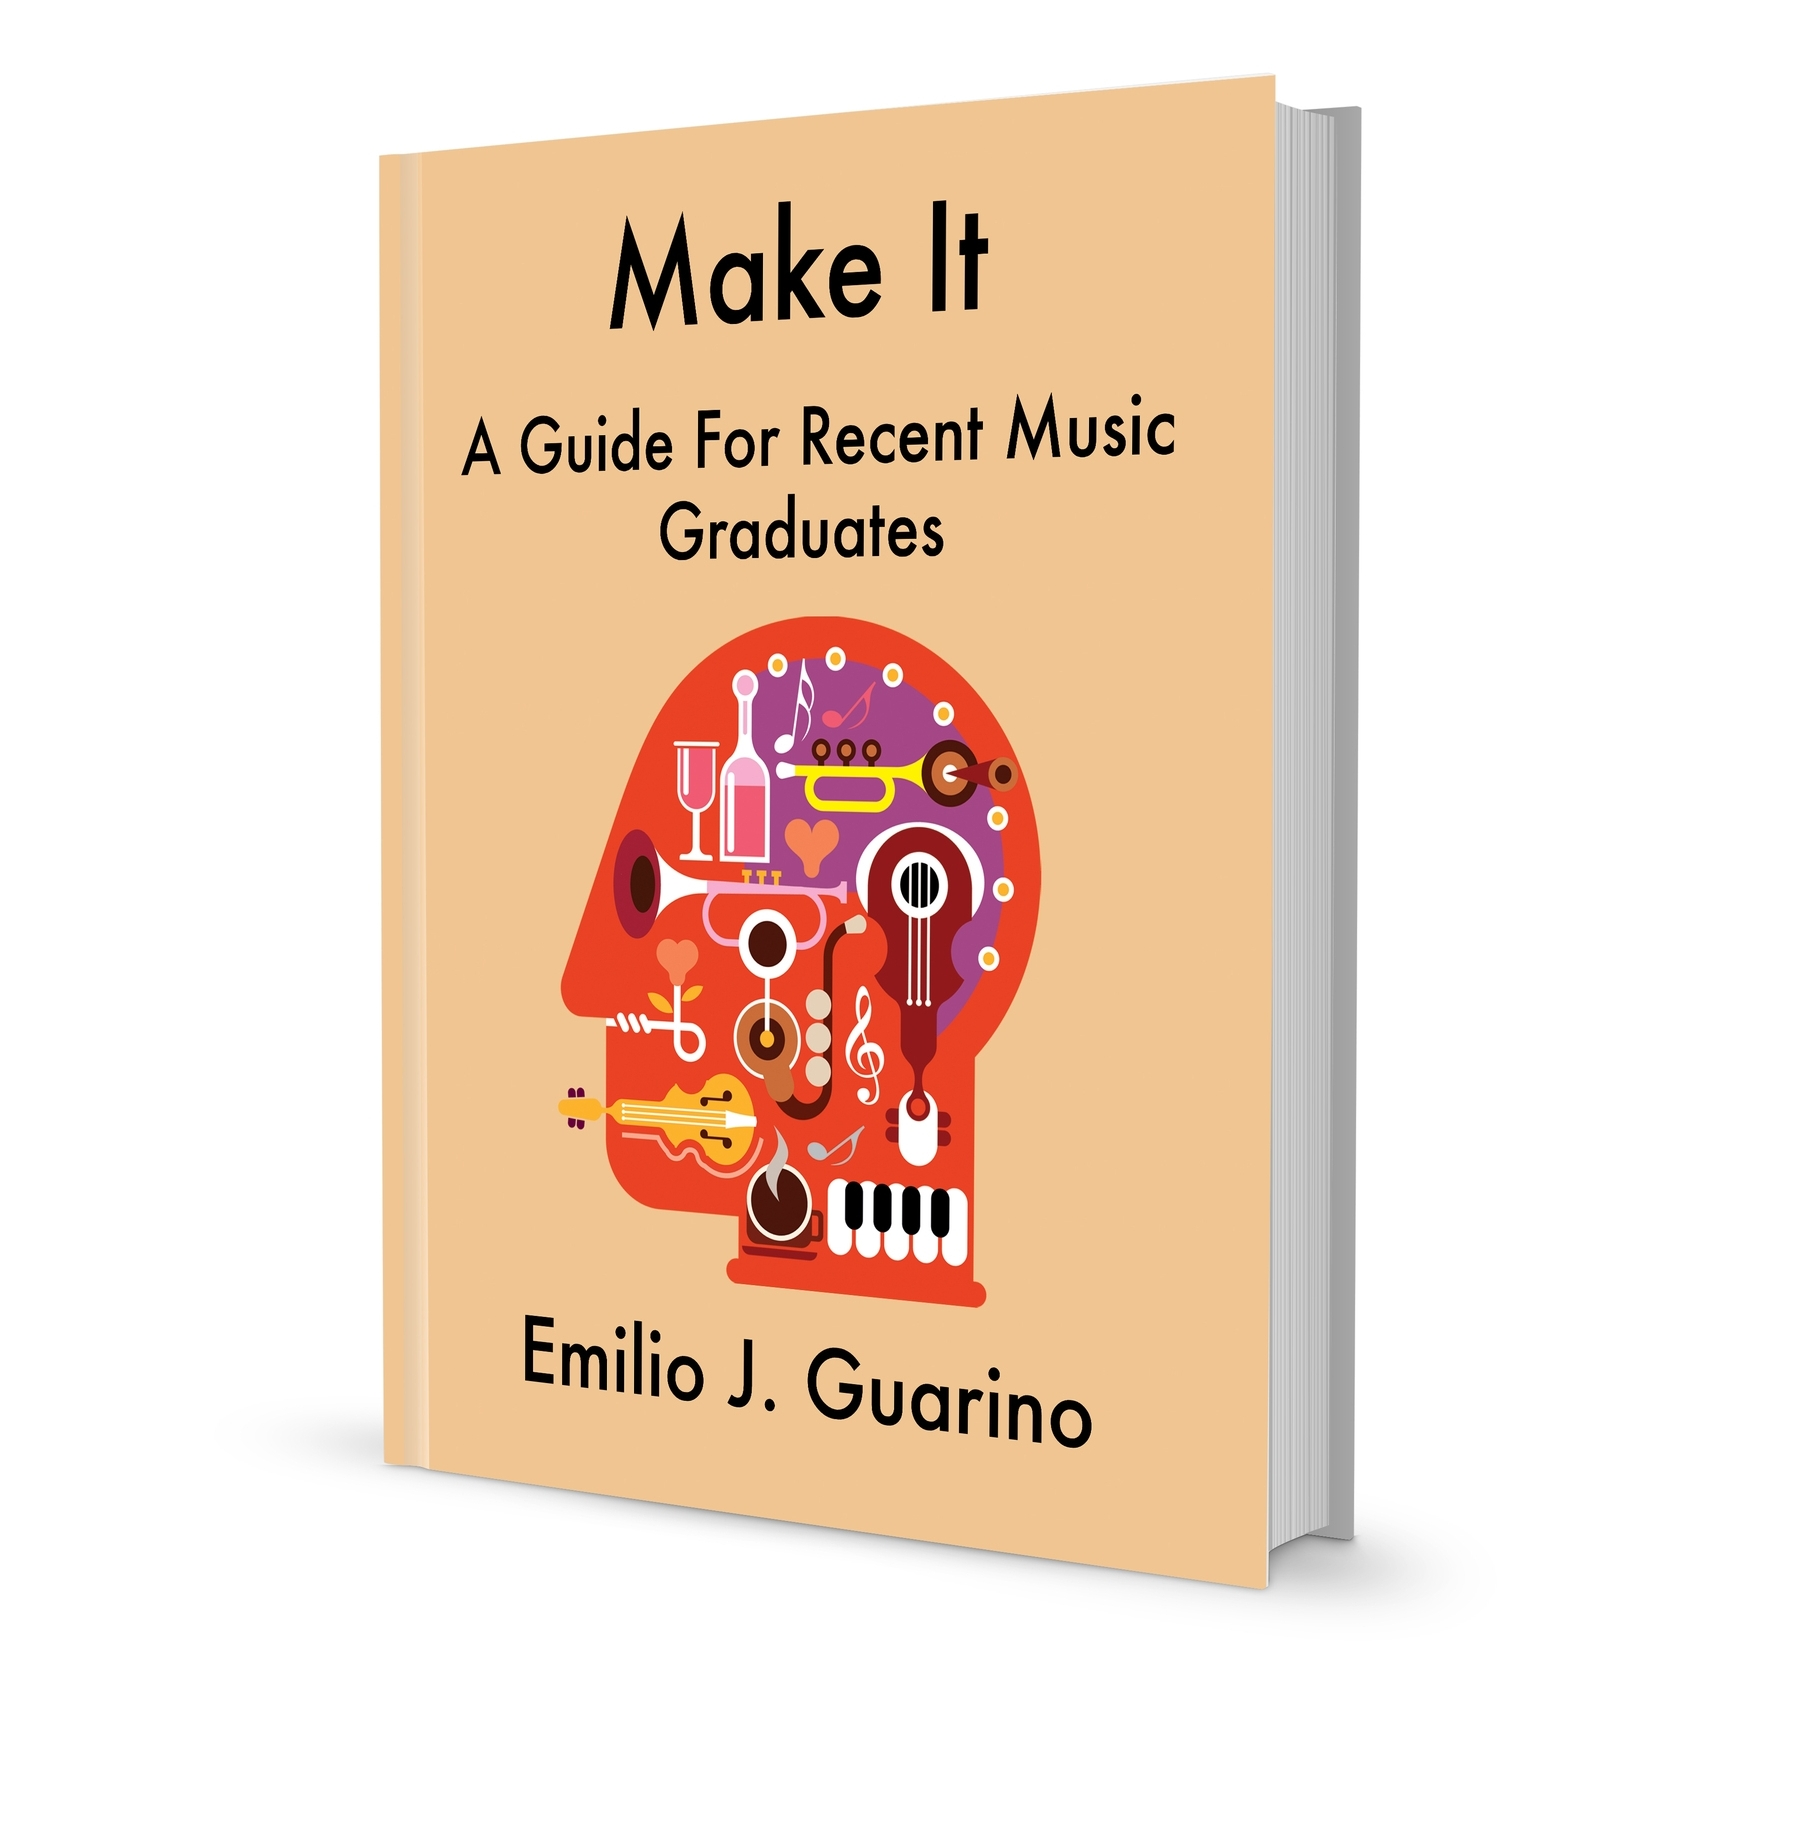 Make It A Guide For Recent Music Graduates